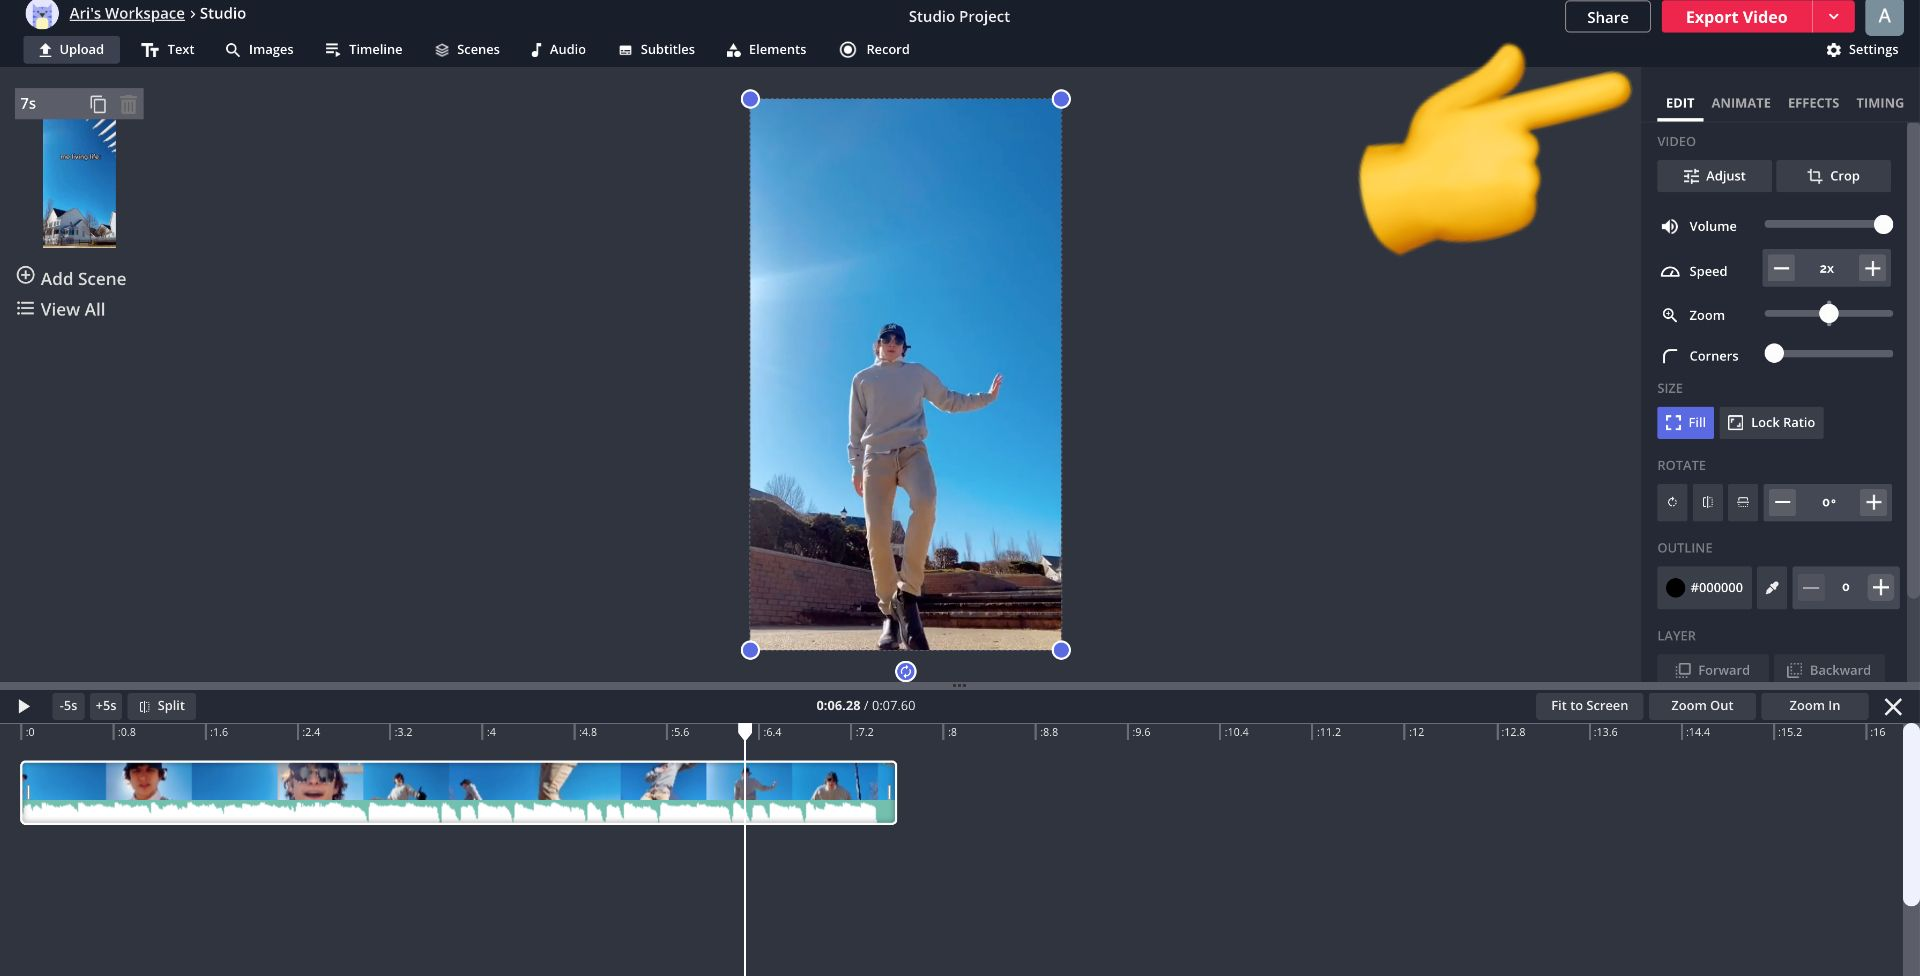 screenshot of Kapwing studio with an emoji pointing to export video